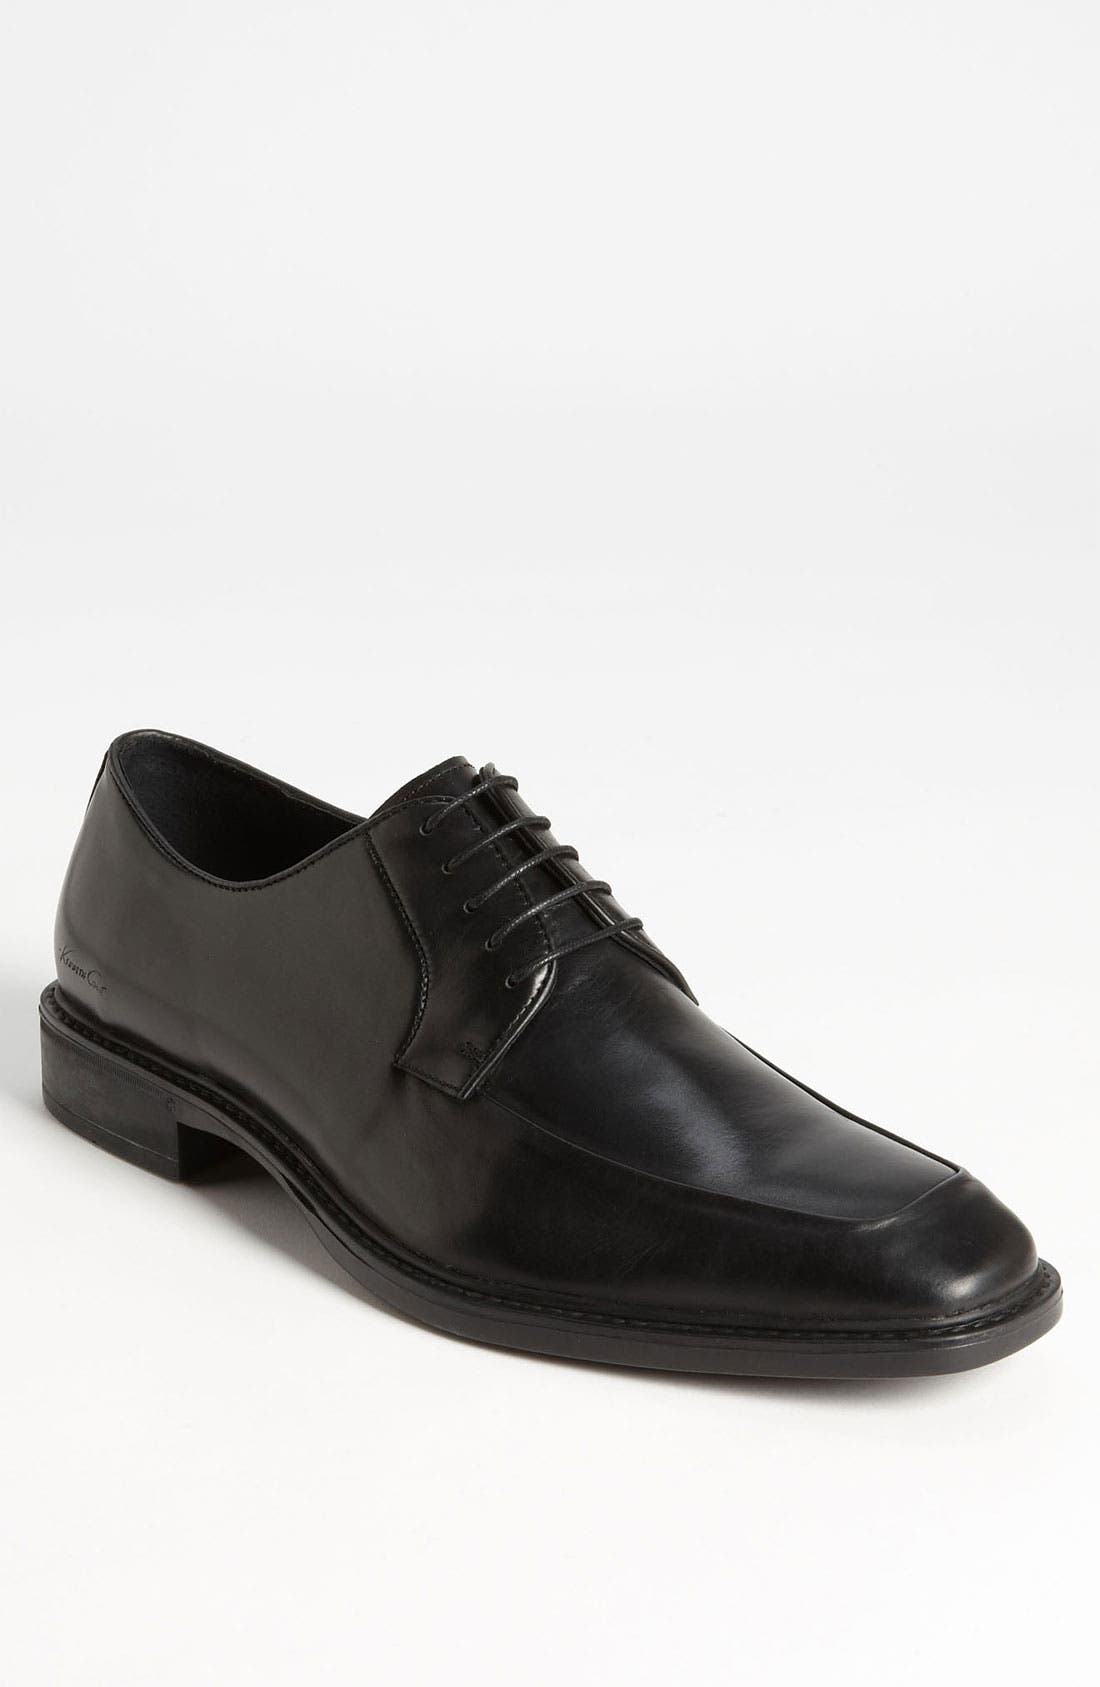 Alternate Image 1 Selected - Kenneth Cole New York 'Style Out' Apron Toe Derby